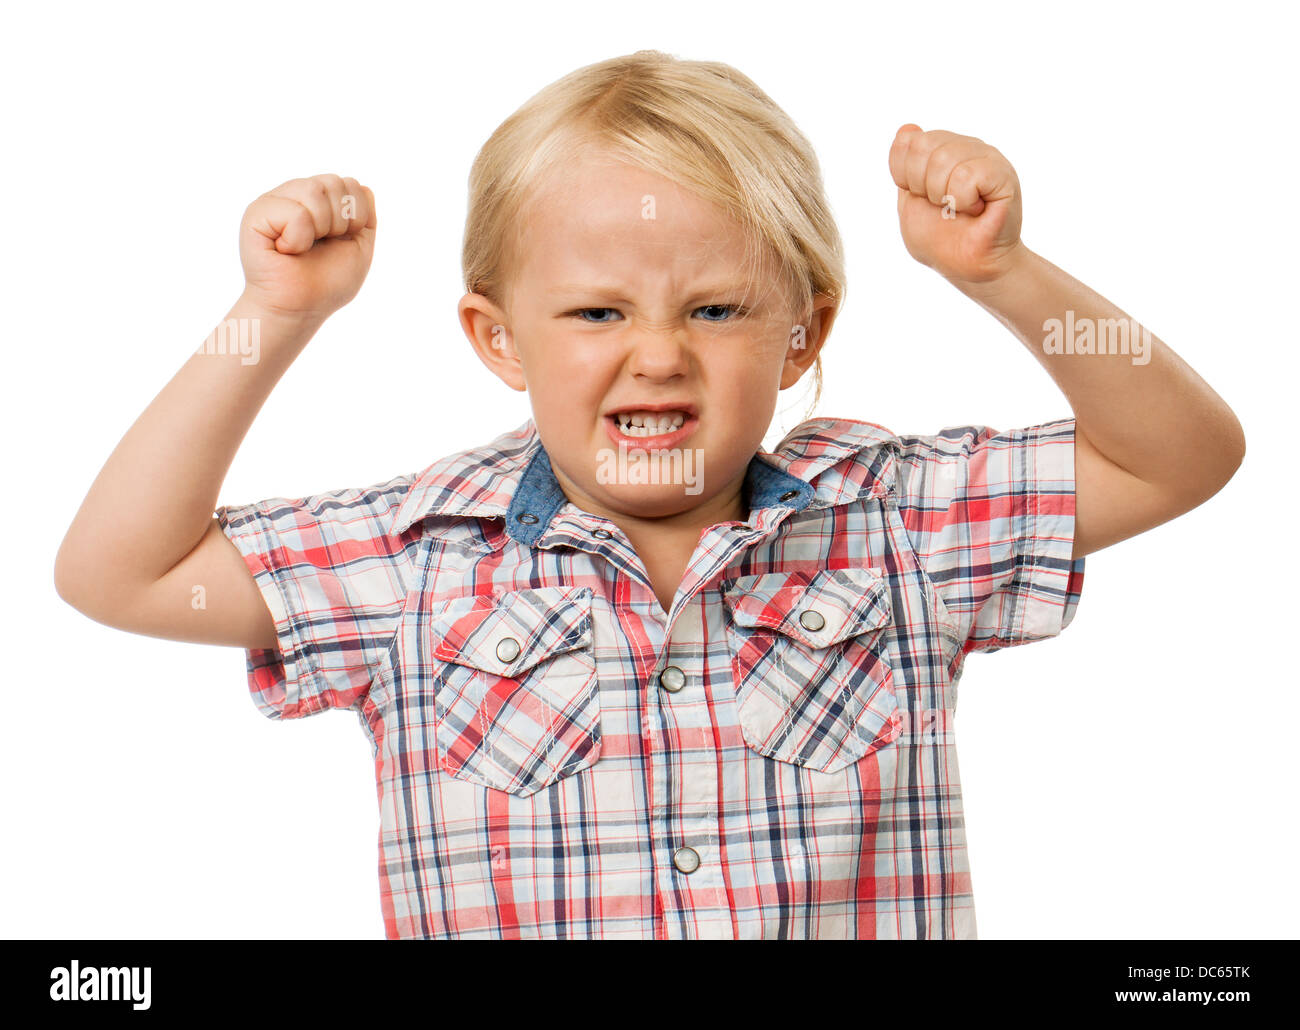 Angry young boy - Stock Image